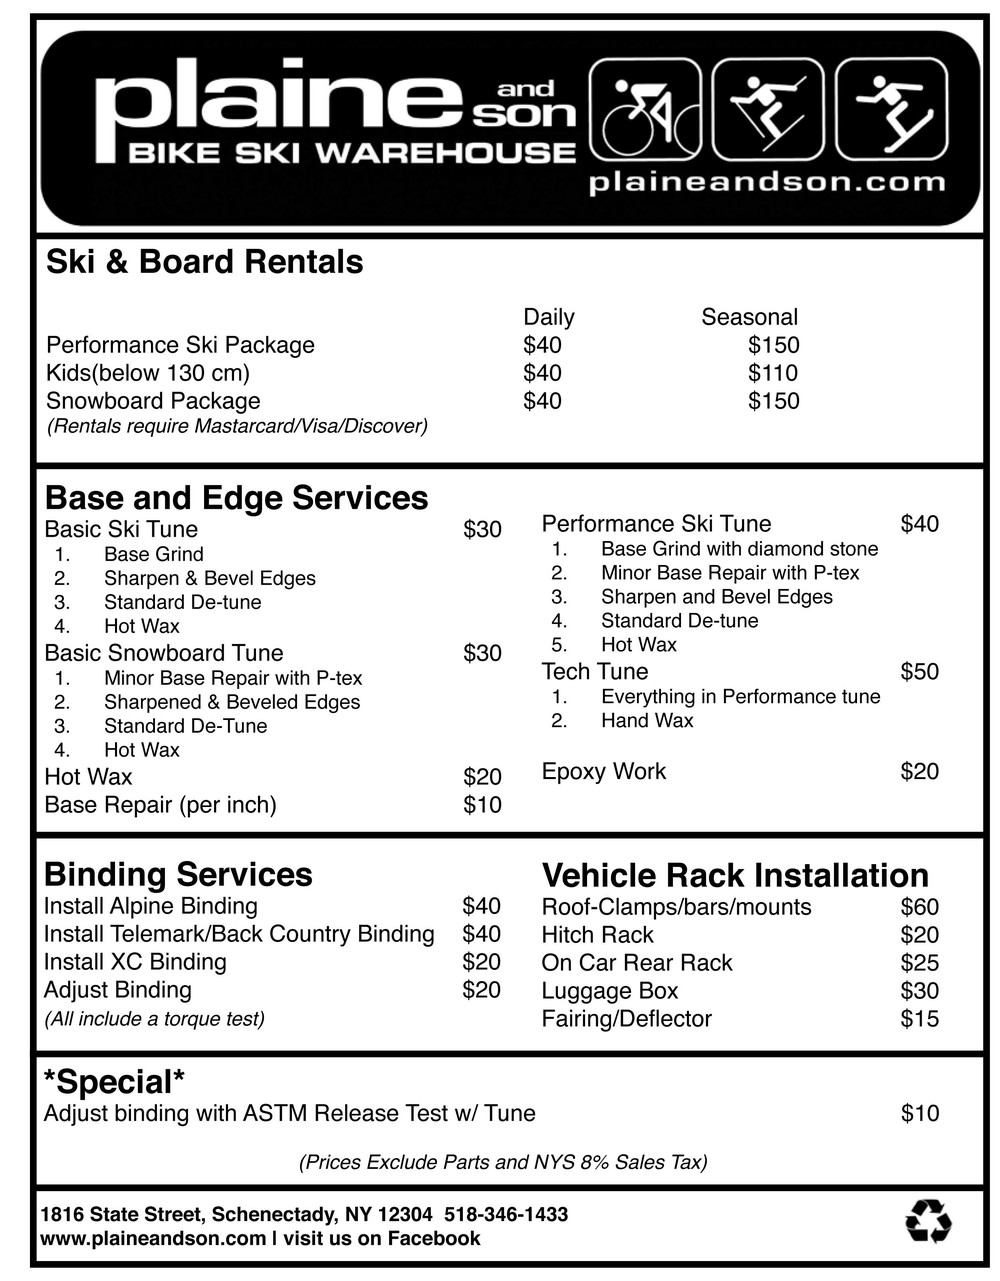 Ski and Snowboard service price sheet created for Plaine and Son Bike Ski Warehouse in 2011. Done in black and white for easier in house printing.